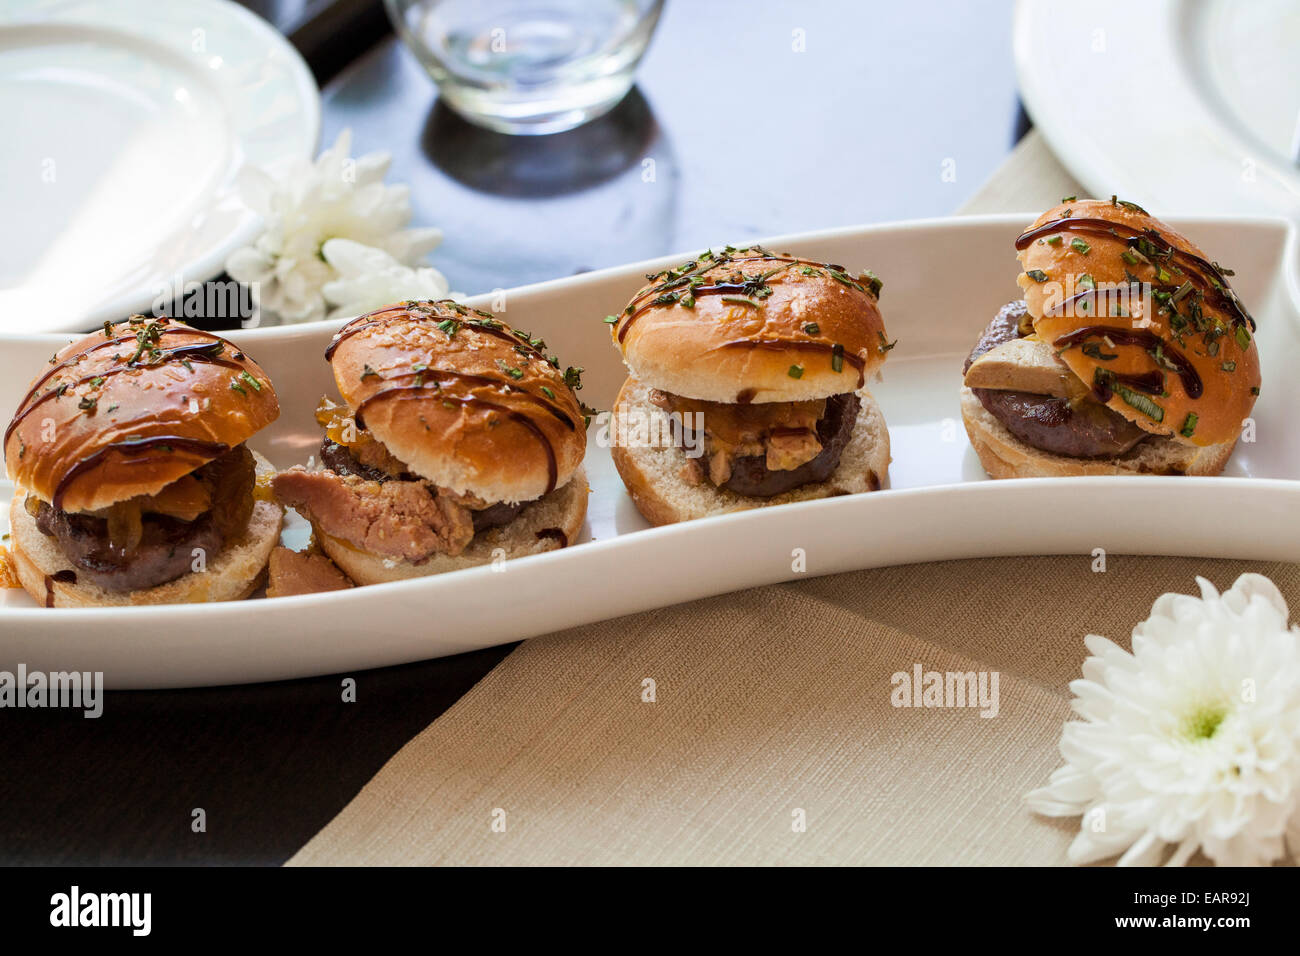 mini-beef-burgers-on-rolls-on-a-curved-p